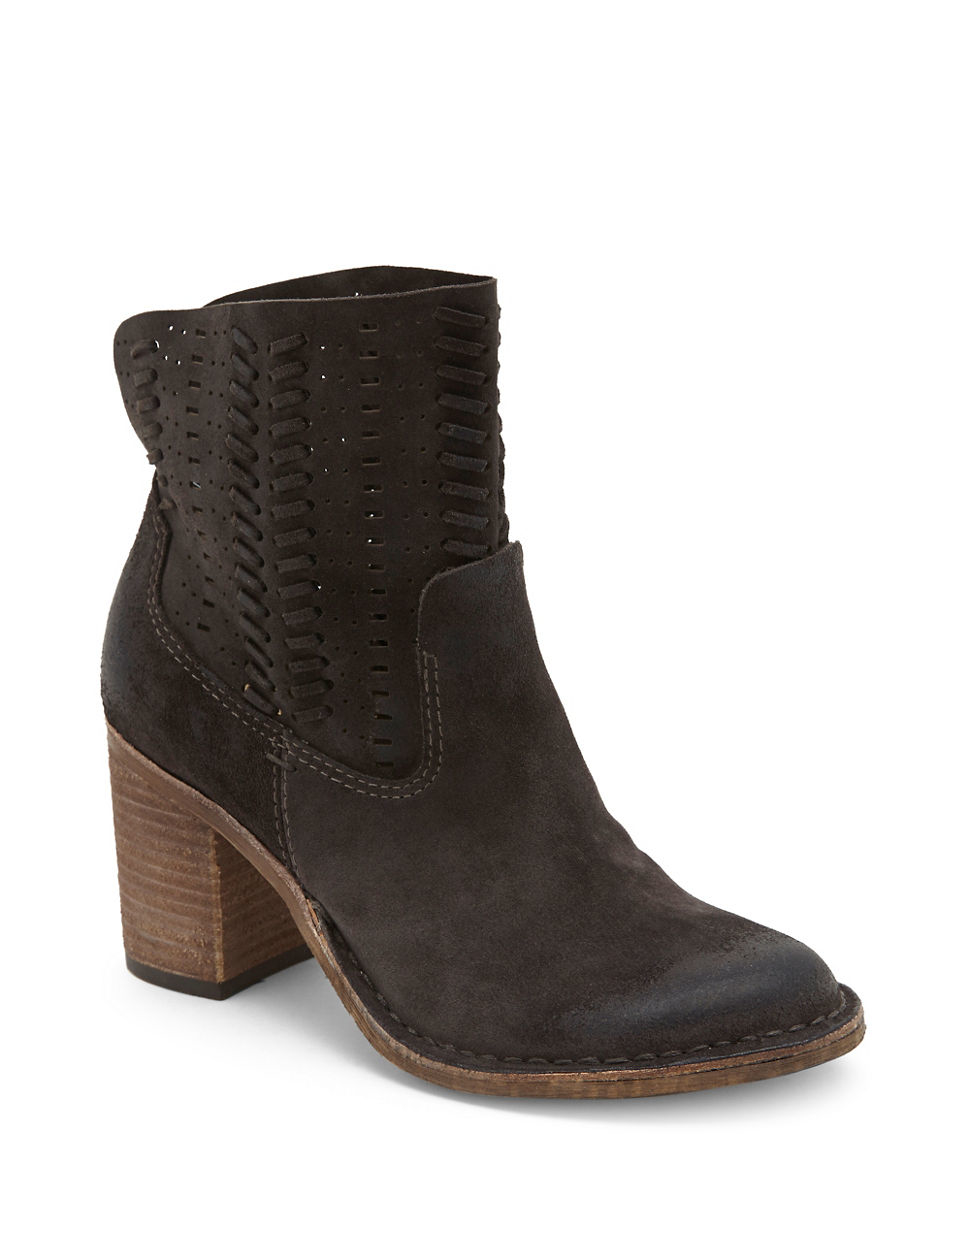 dolce vita landon perforated suede ankle boots in black lyst